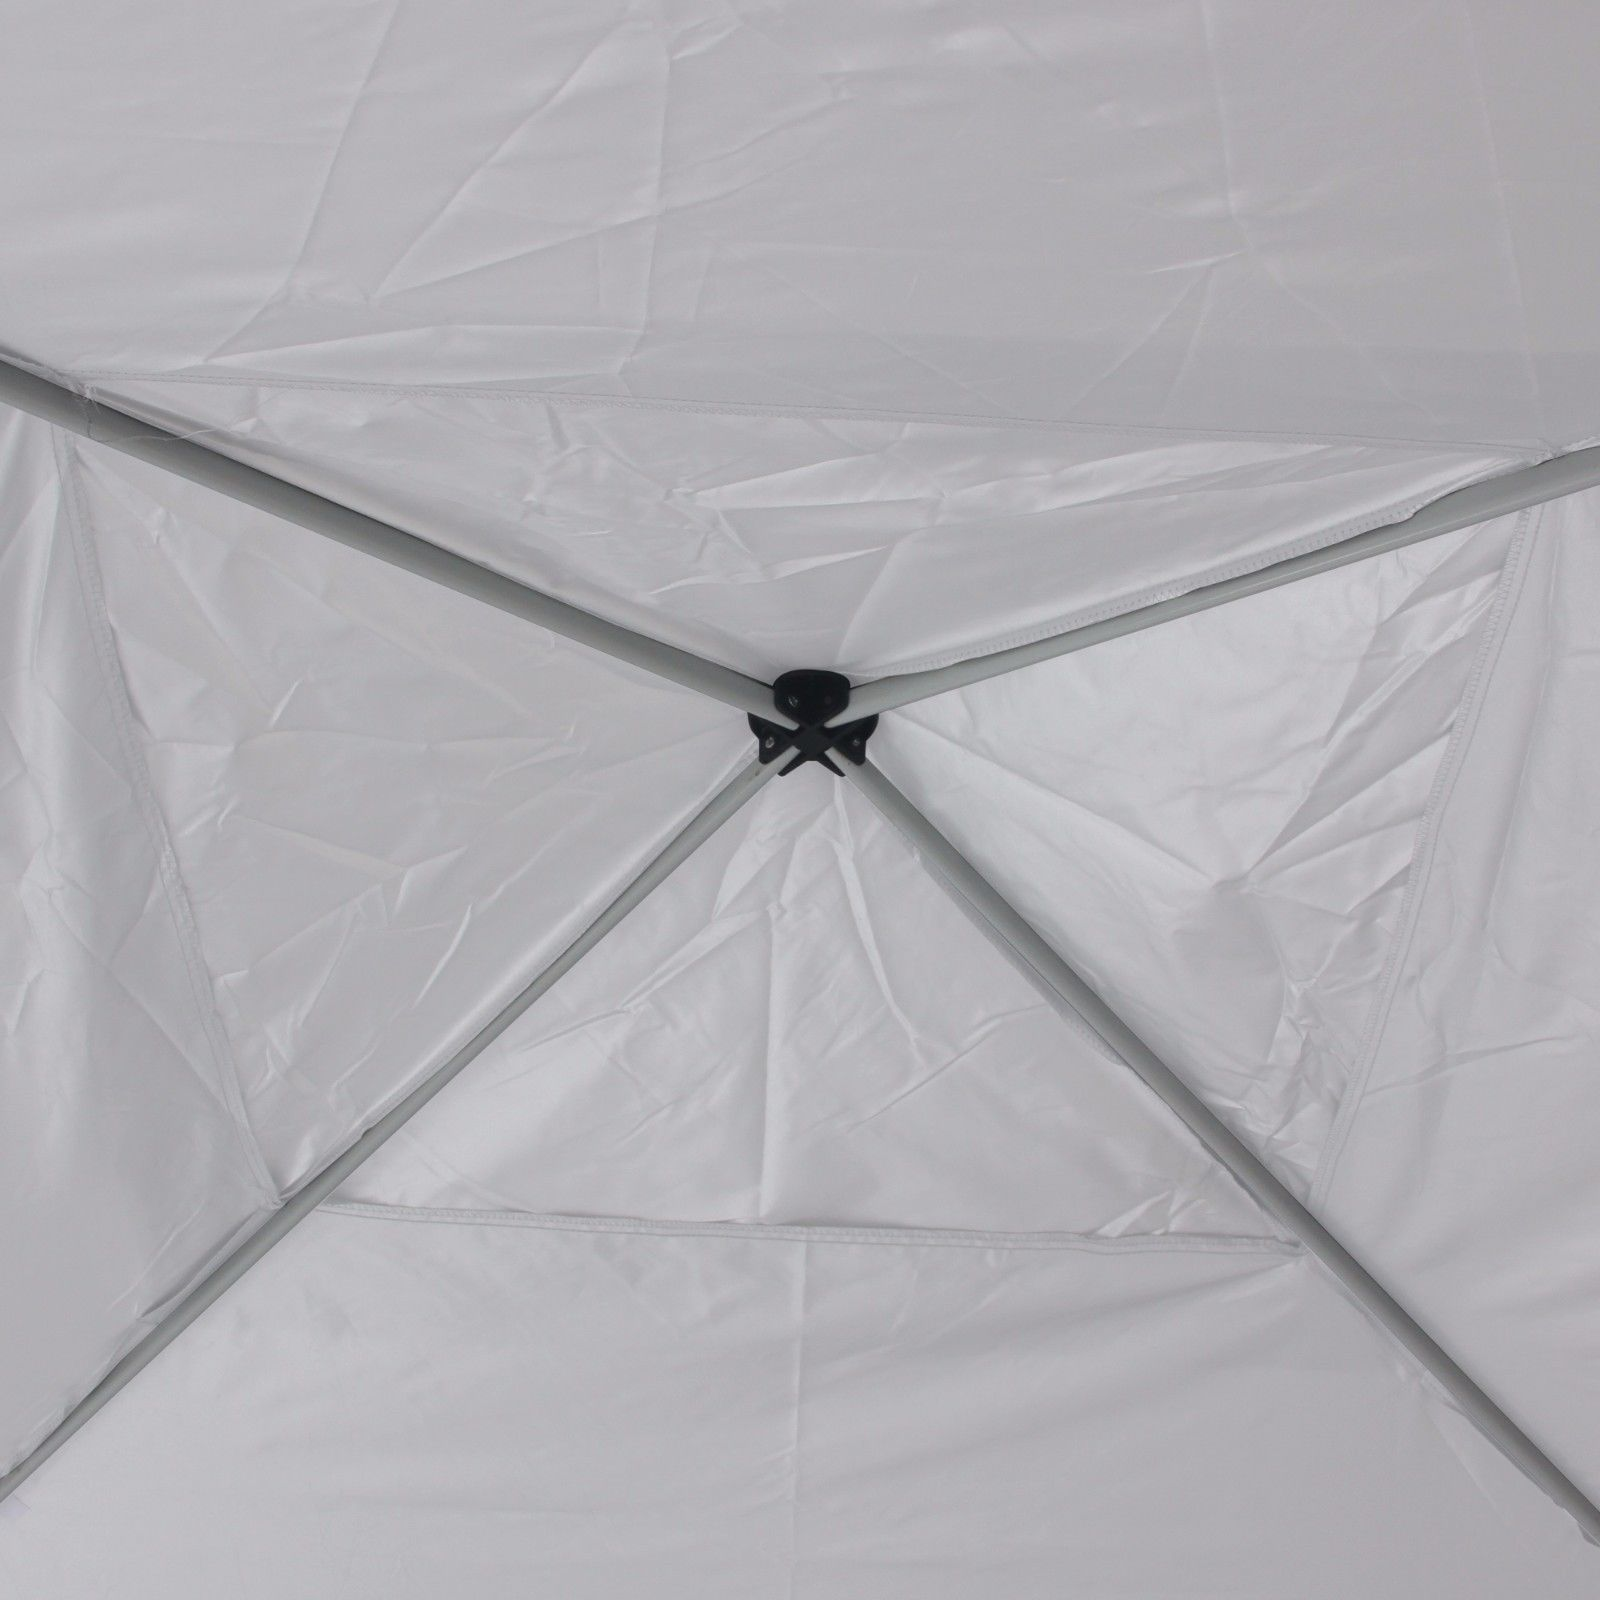 Pop Up Canopy Tent 118'' x 118'' UV Coated Outdoor Party Gazebo with Carry Bag